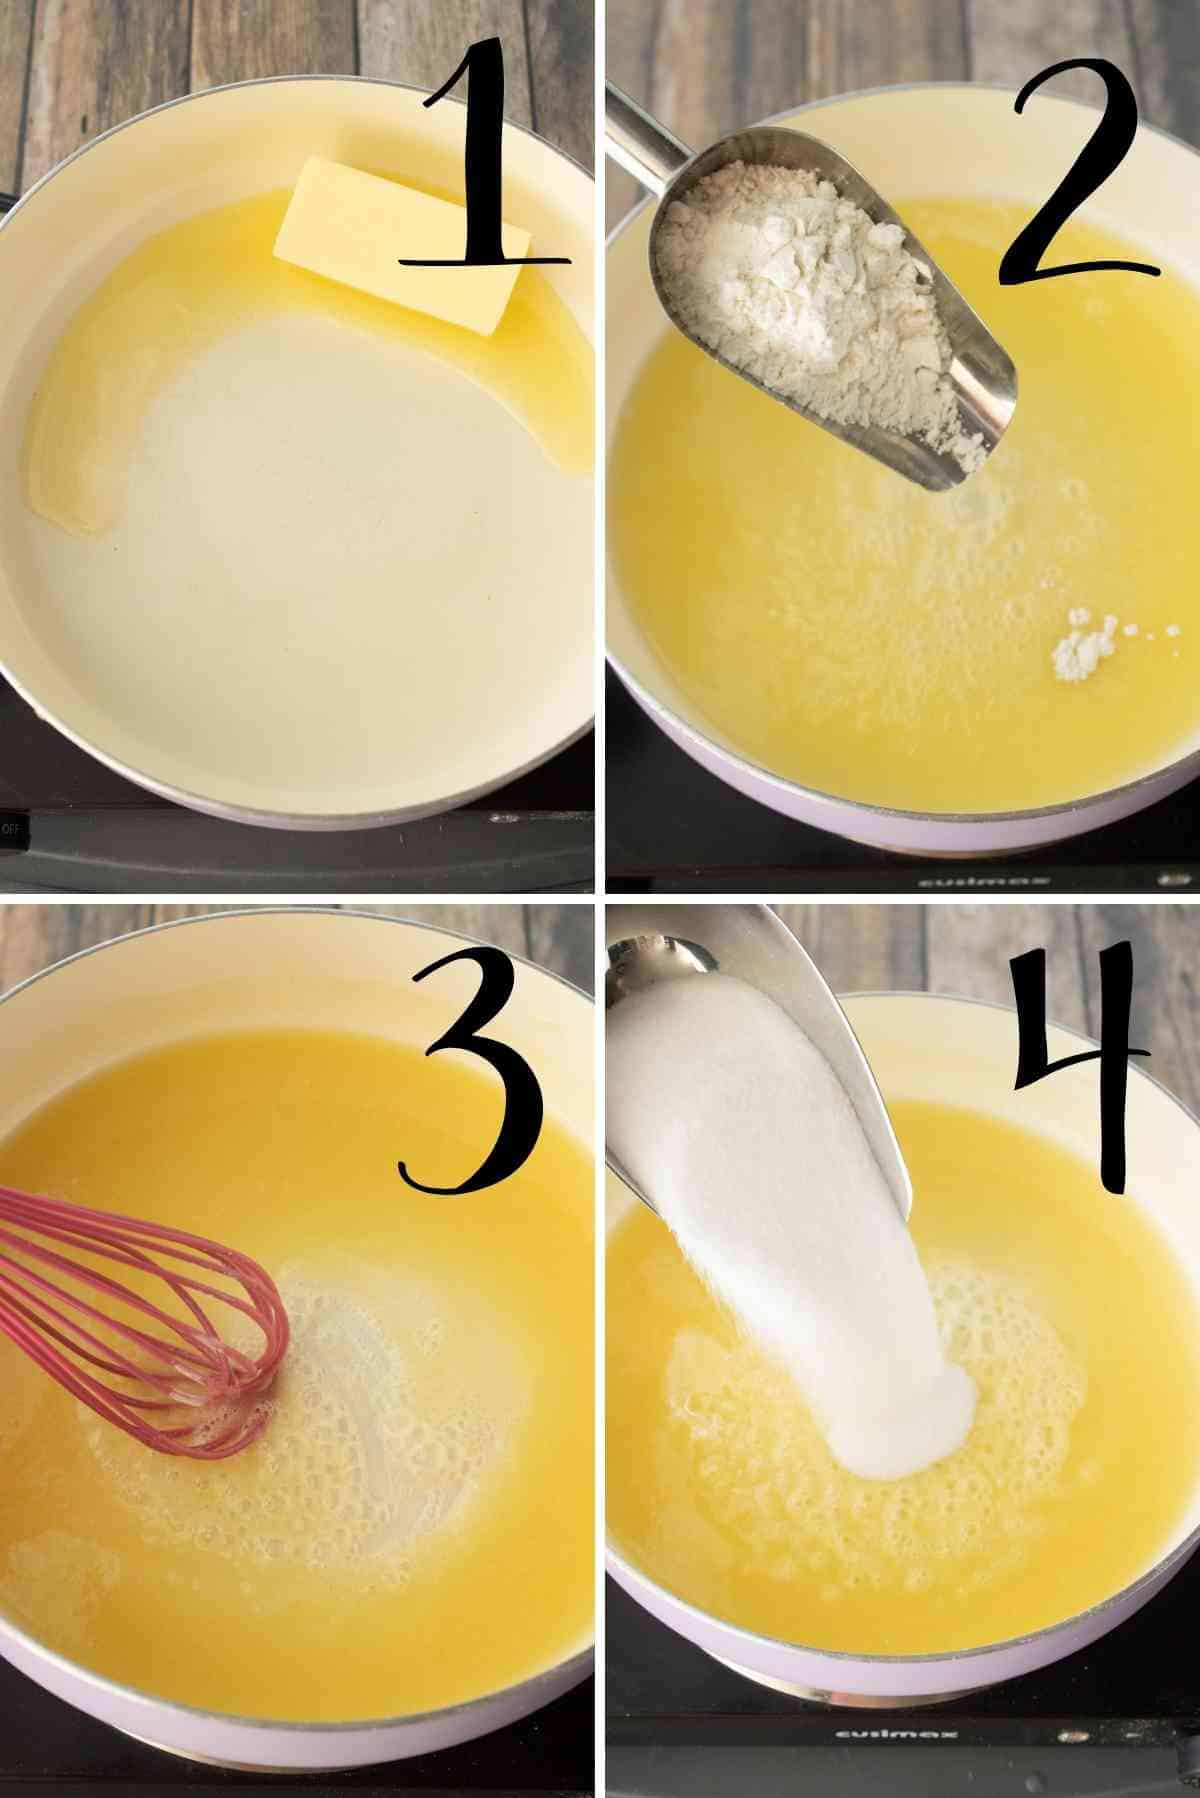 Melt the butter, whisk in the flour and add the sugar to start the caramel sauce.